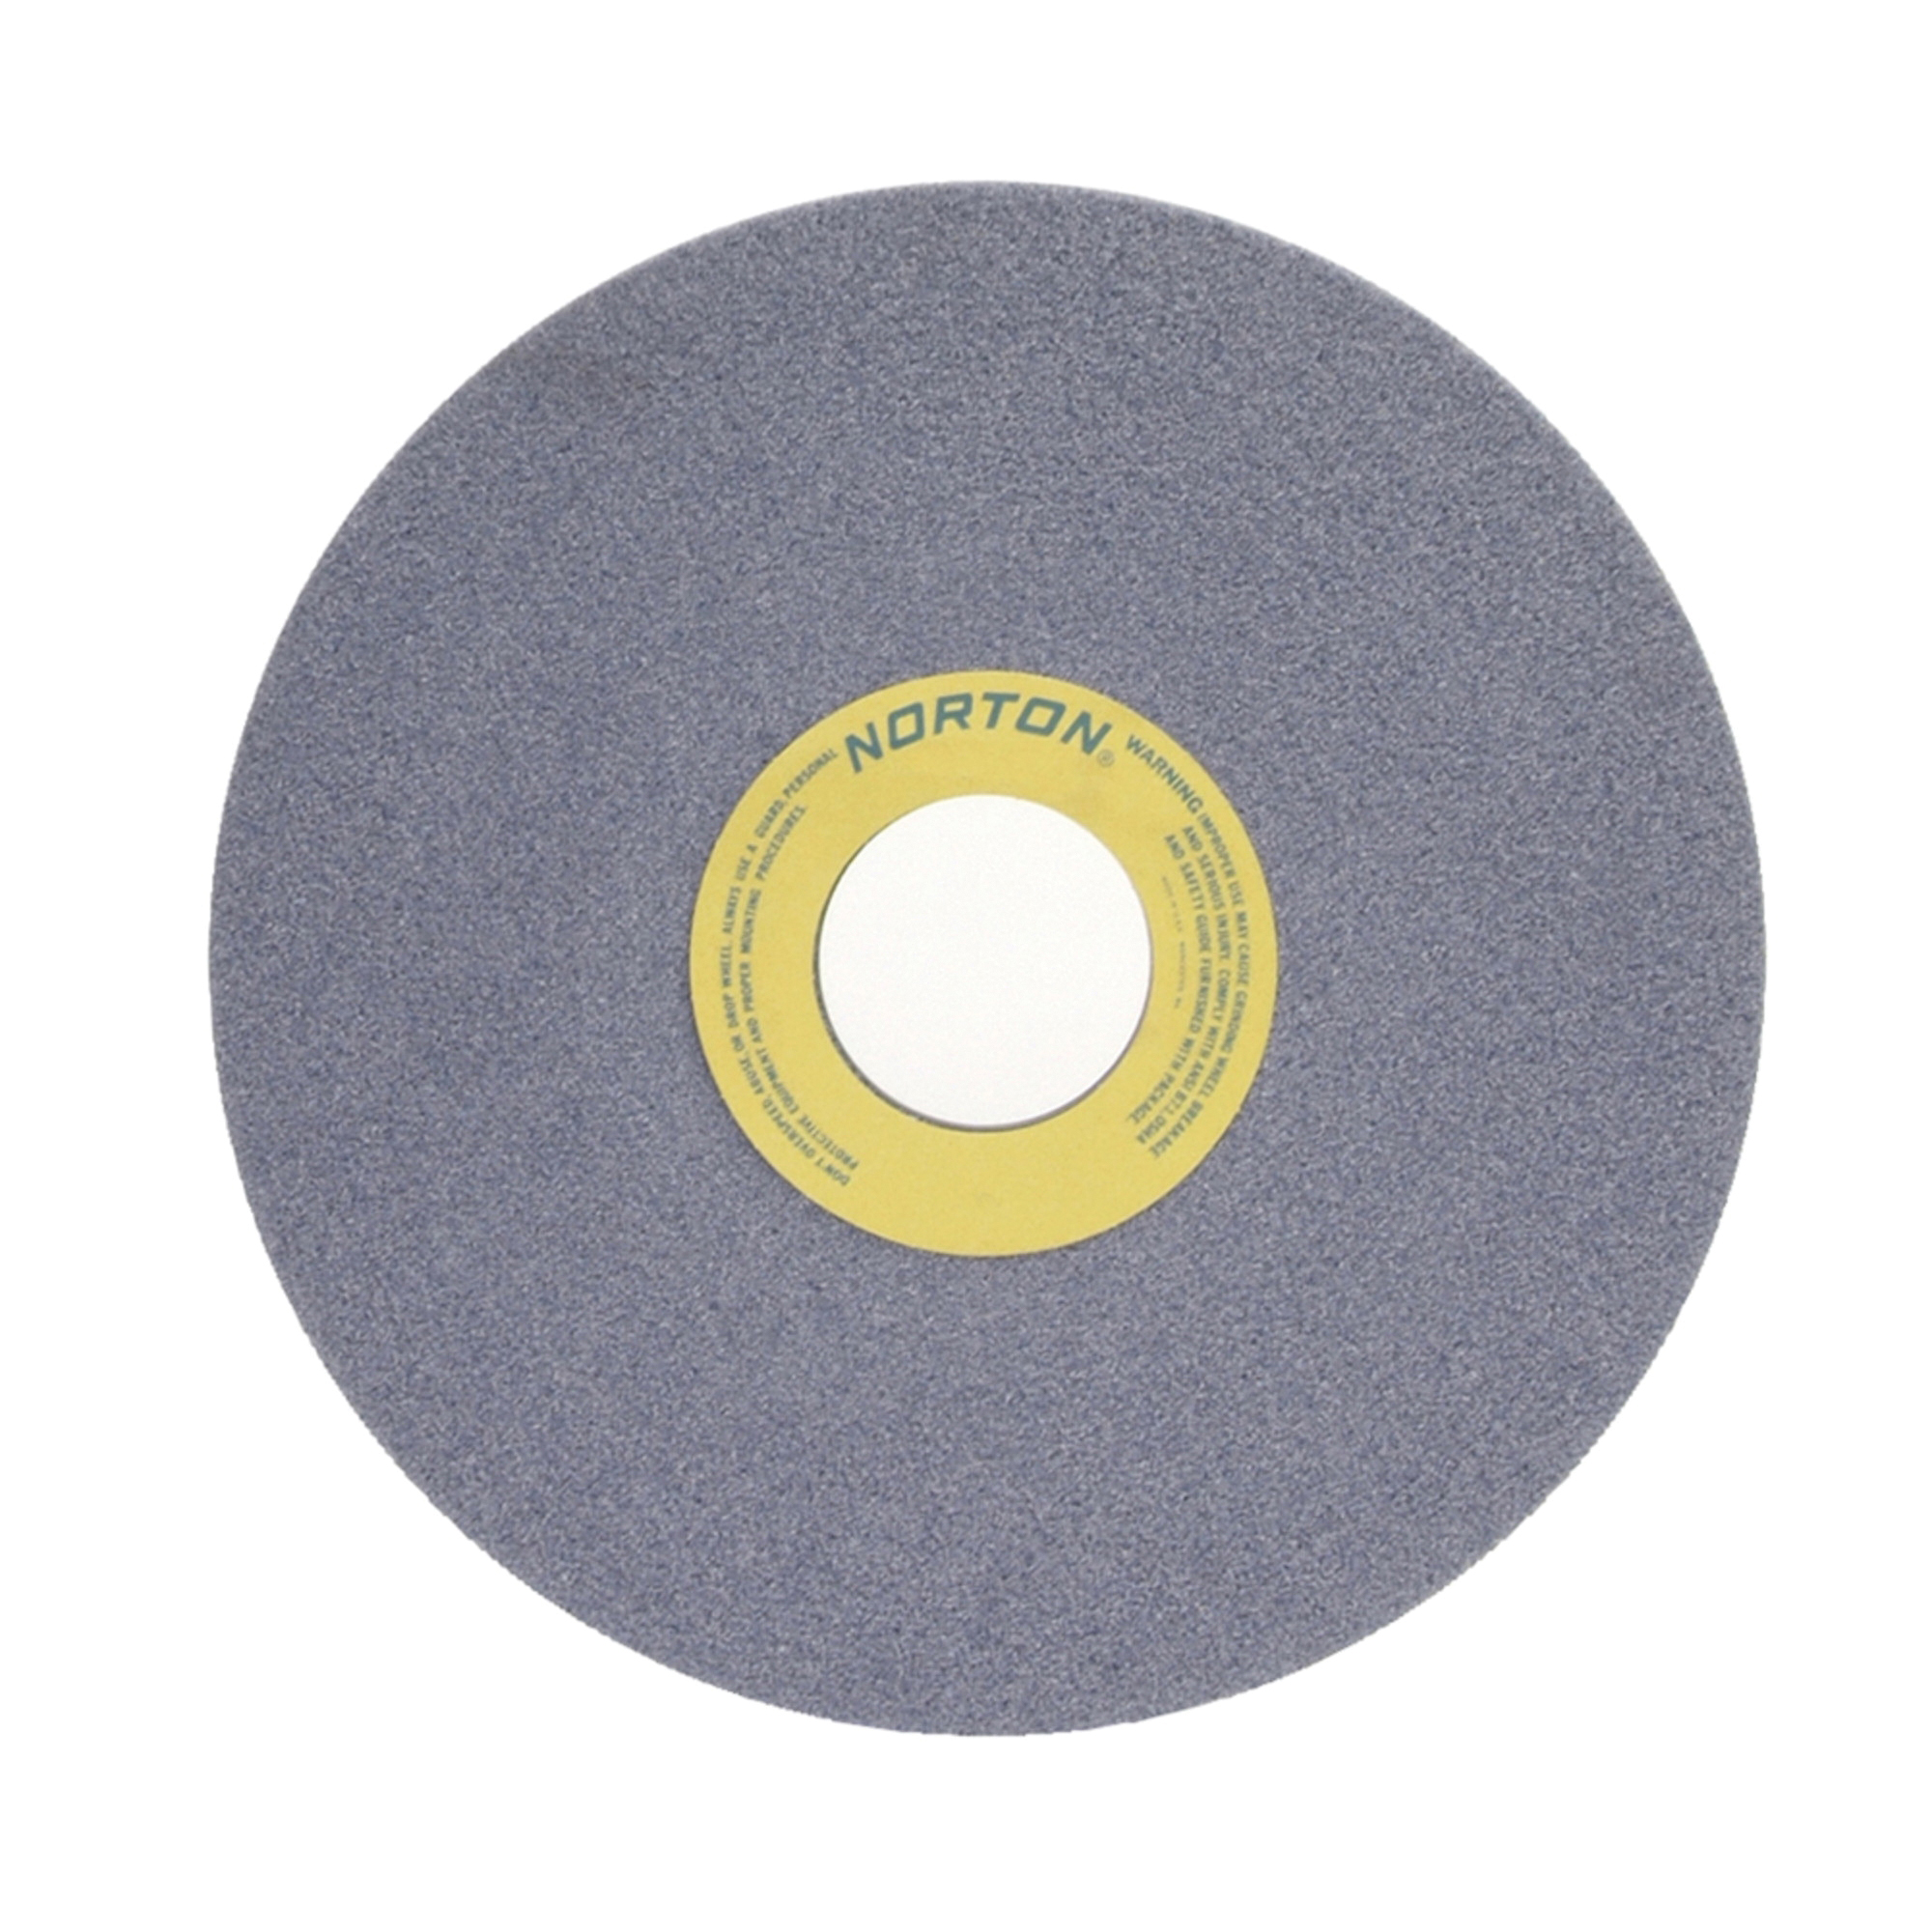 Norton® 66253363912 32A Straight Toolroom Wheel, 14 in Dia x 1 in THK, 3 in Center Hole, 46 Grit, Aluminum Oxide Abrasive